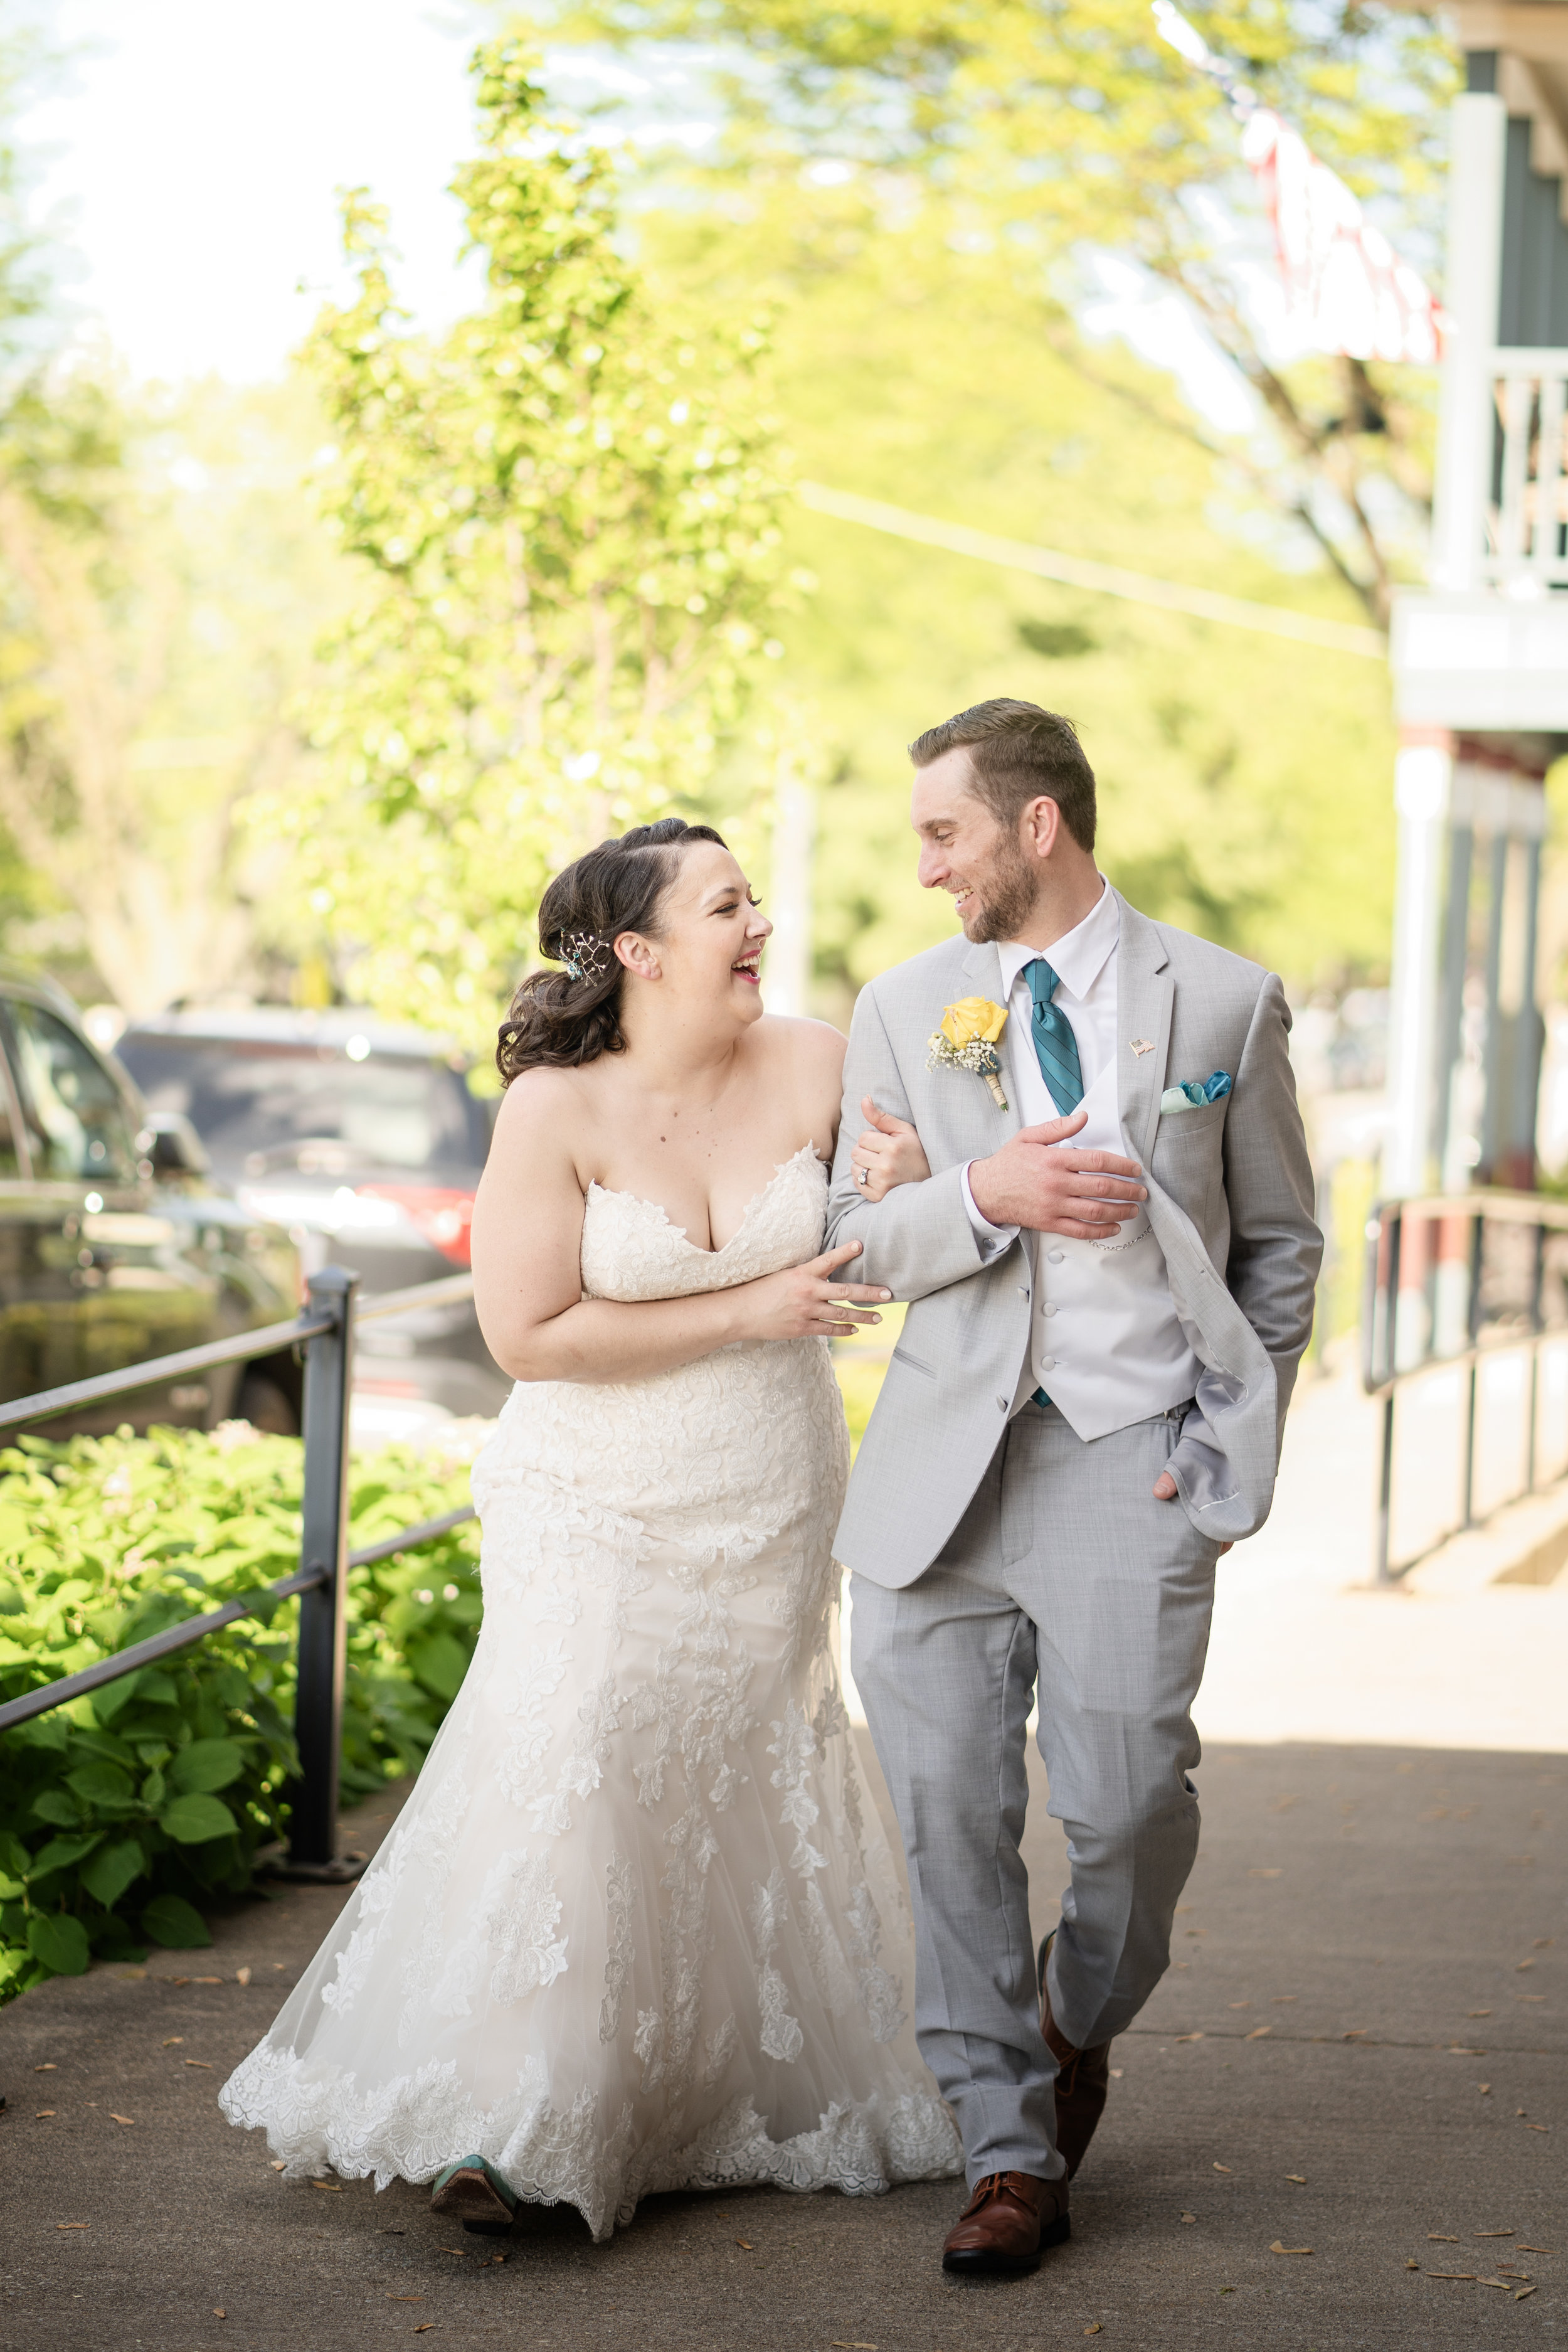 bride-groom-laughing-and-strolling-on-sidewalk.jpg